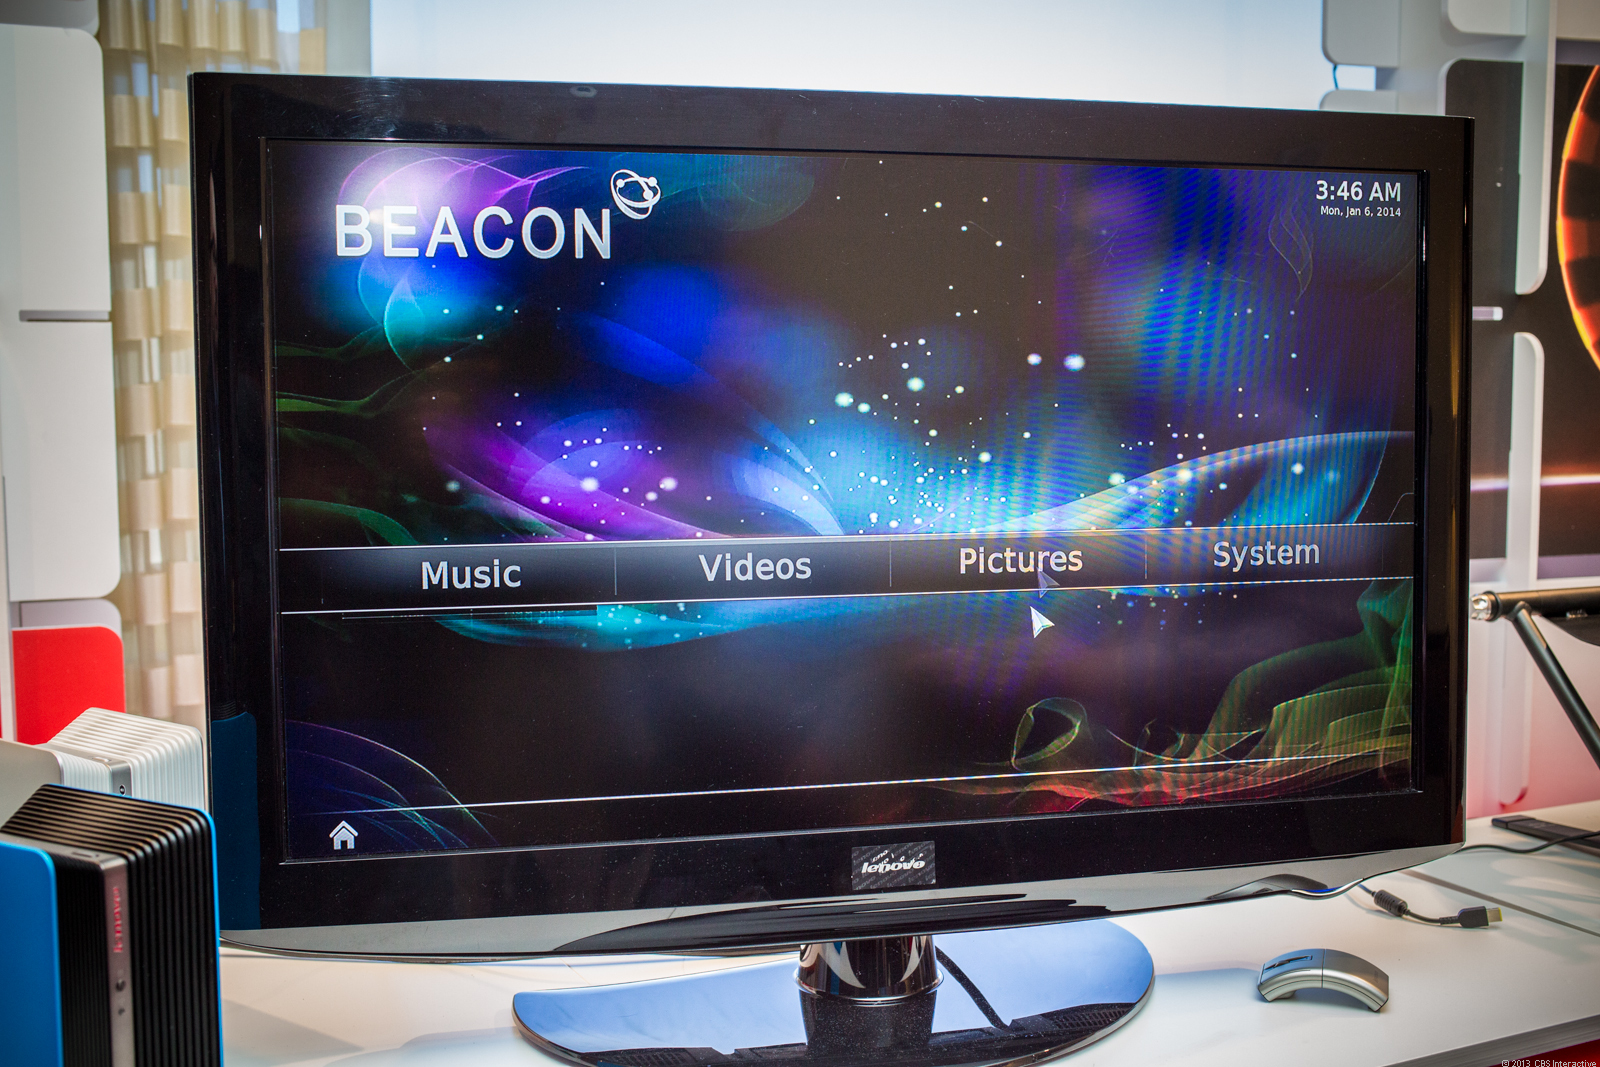 Lenovo Beacon interface